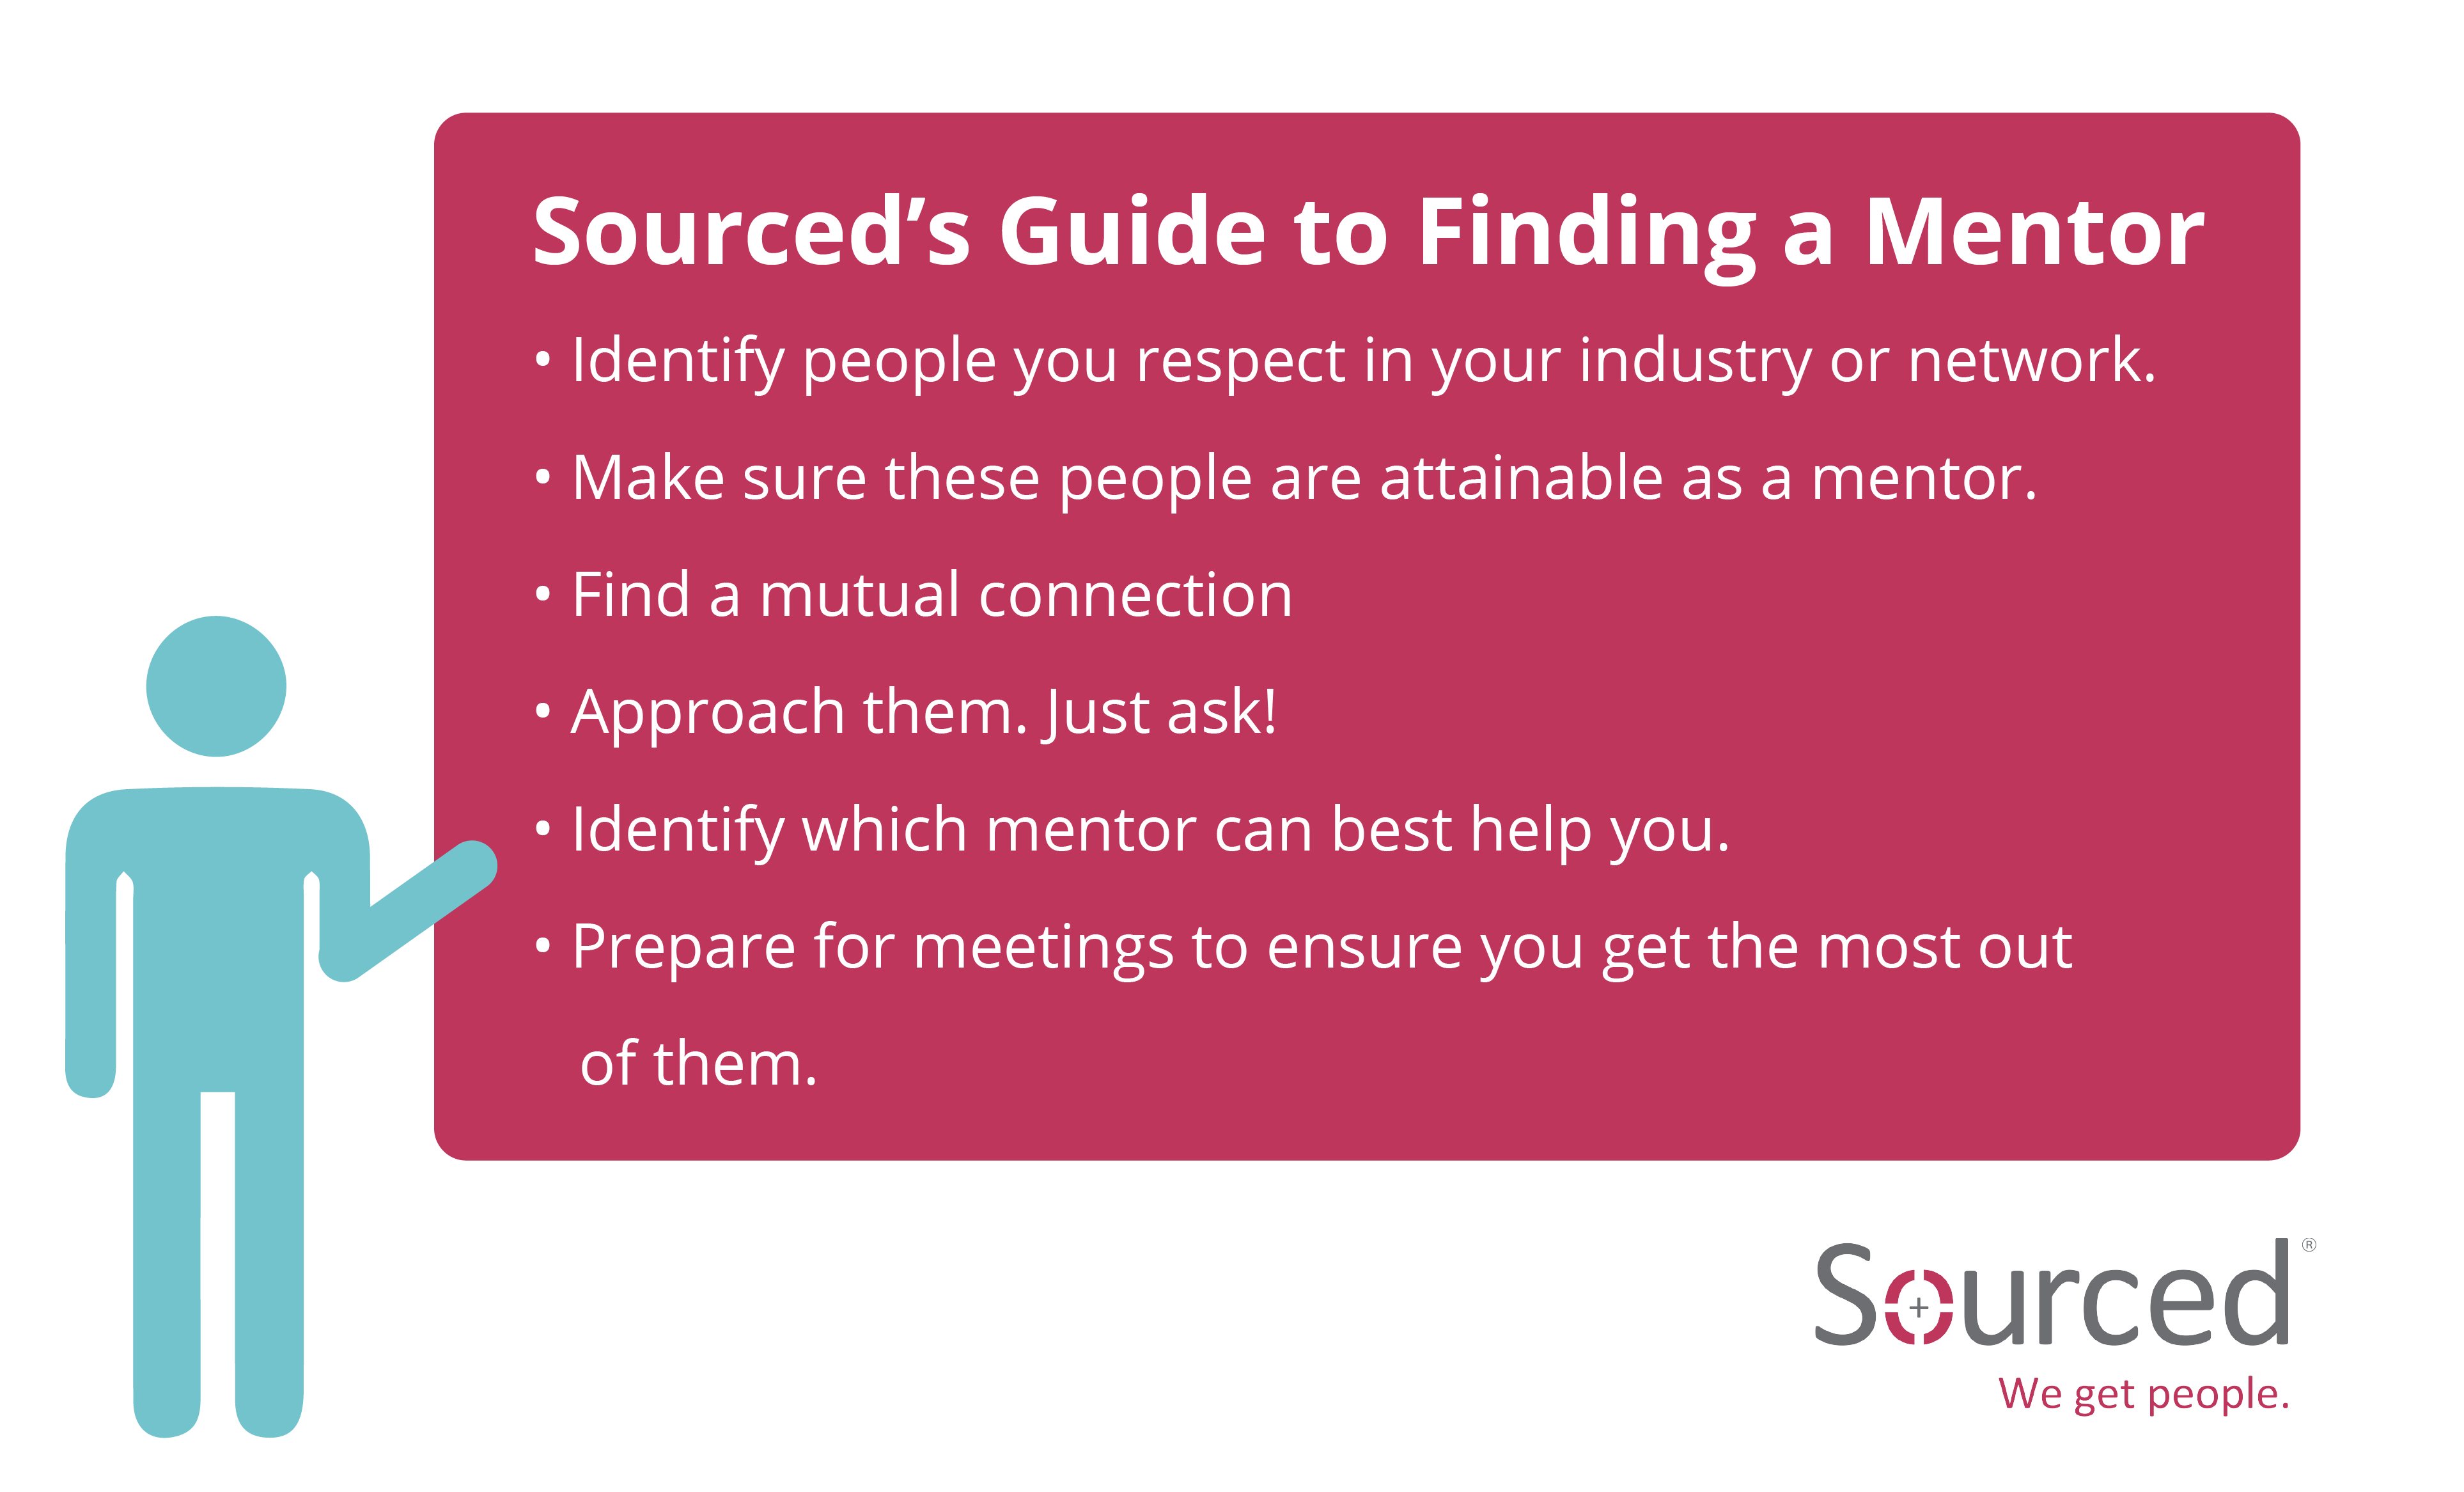 Sourced's Guide to Finding a Mentor